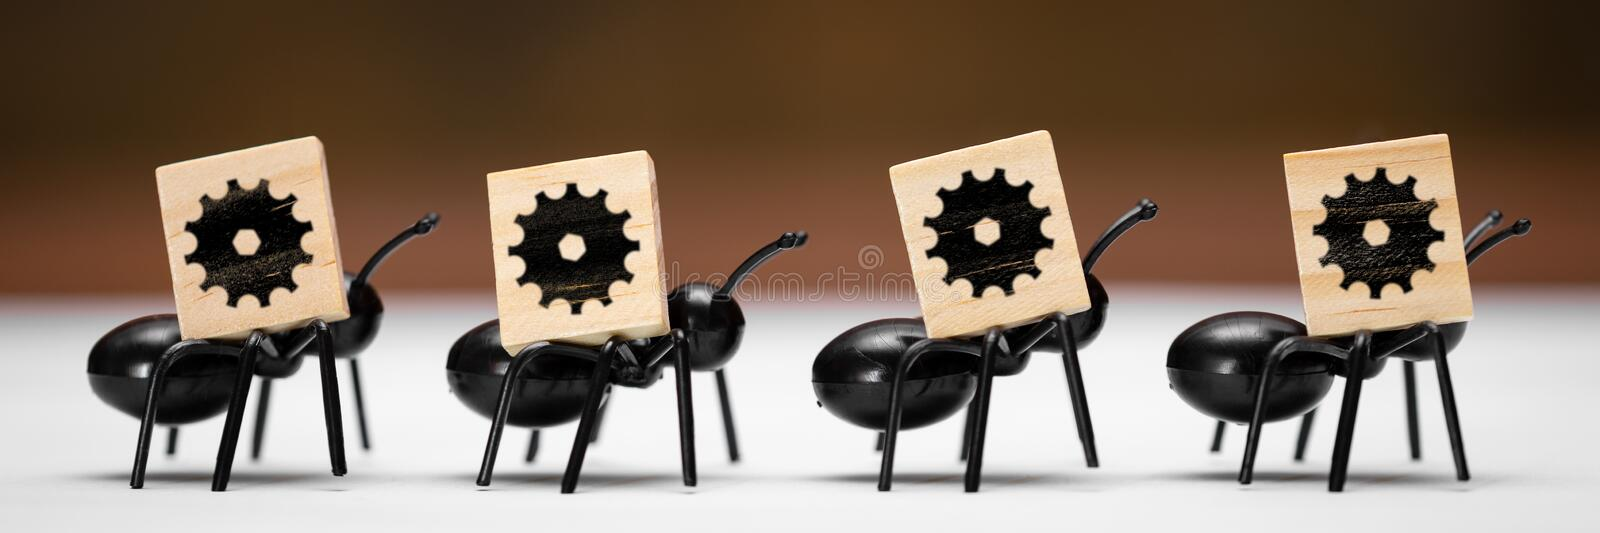 Ants carry wooden blocks with the symbol of a cogwheel. Four ants carry wooden blocks with the symbol of a cogwheel royalty free stock photos